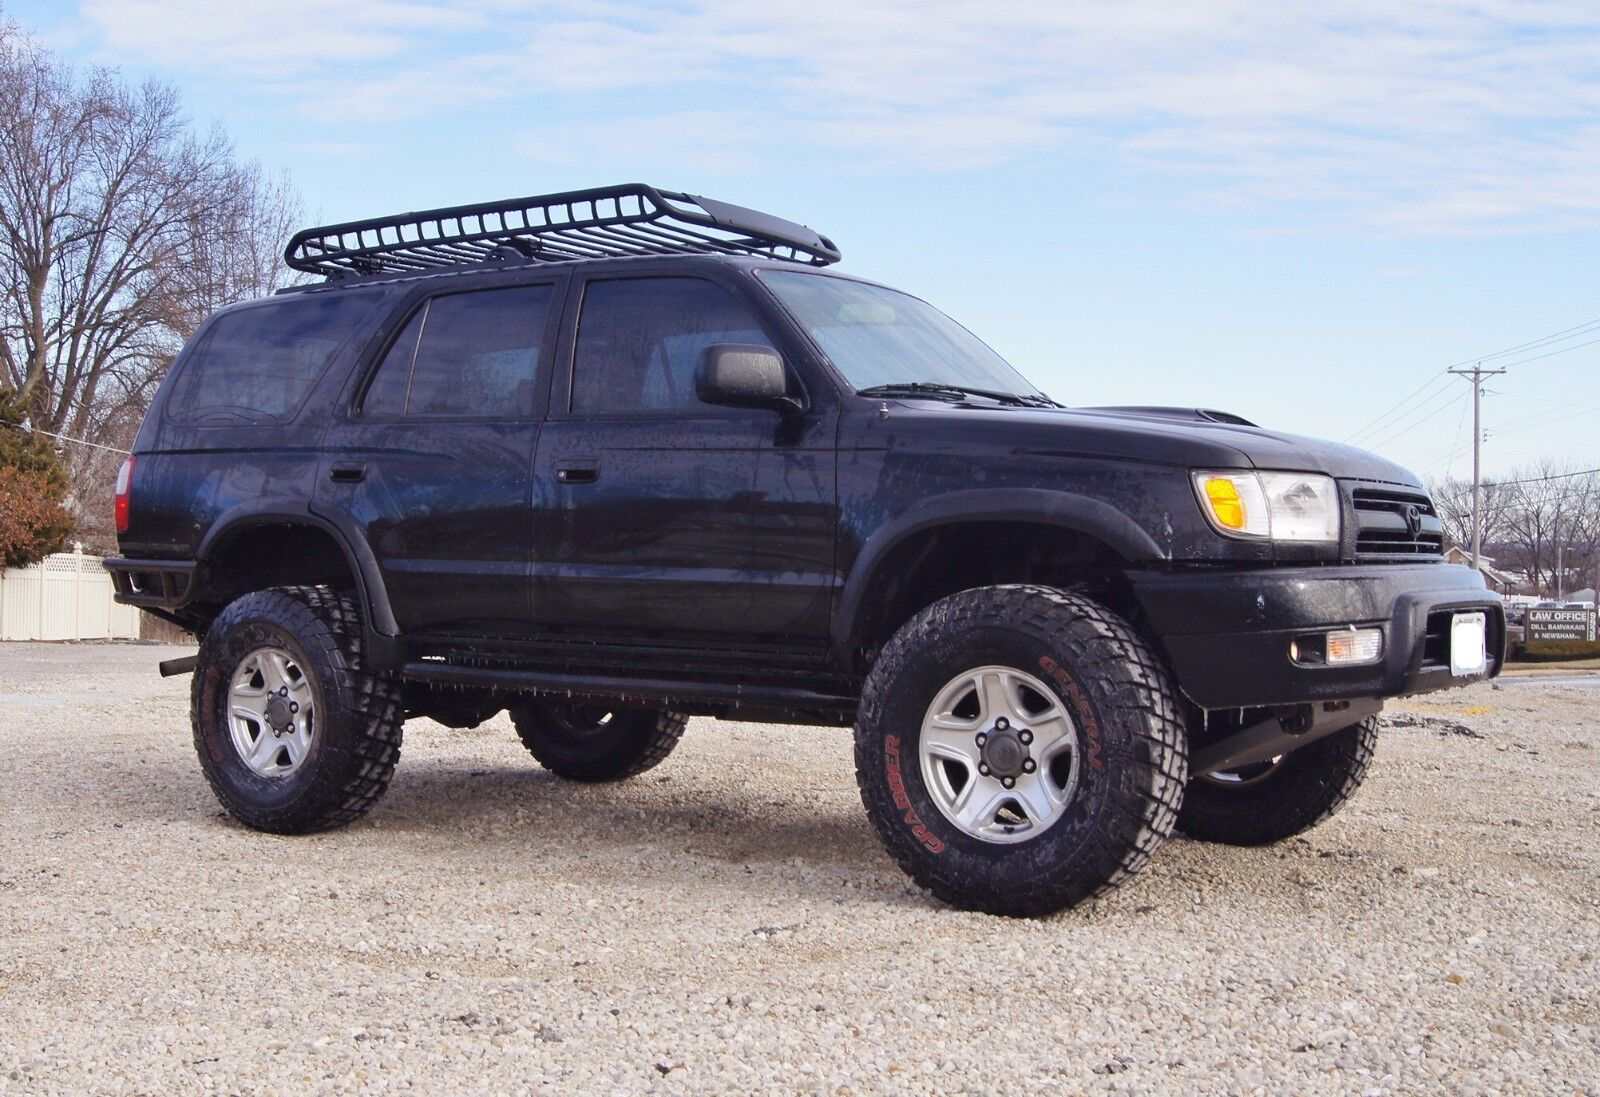 1999 Lifted 3rd Gen Toyota 4runner Sport Sr5 Black Used Toyota 4runner For Sale In Saint Louis Missouri Vehicles Classifieds Com